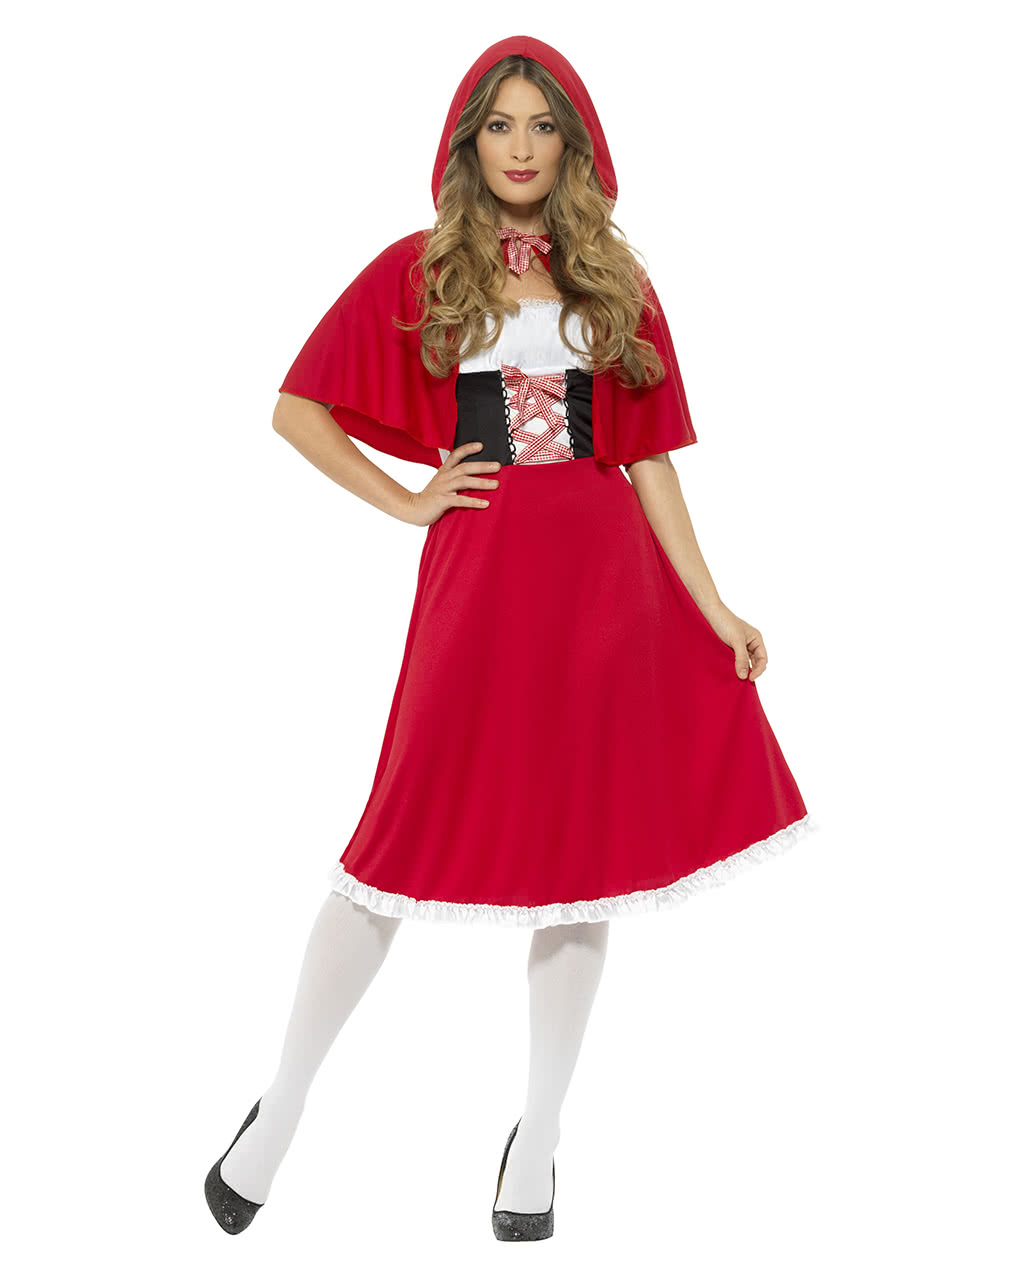 Little Red Riding Hood Costume With Hood For Carnival Horror